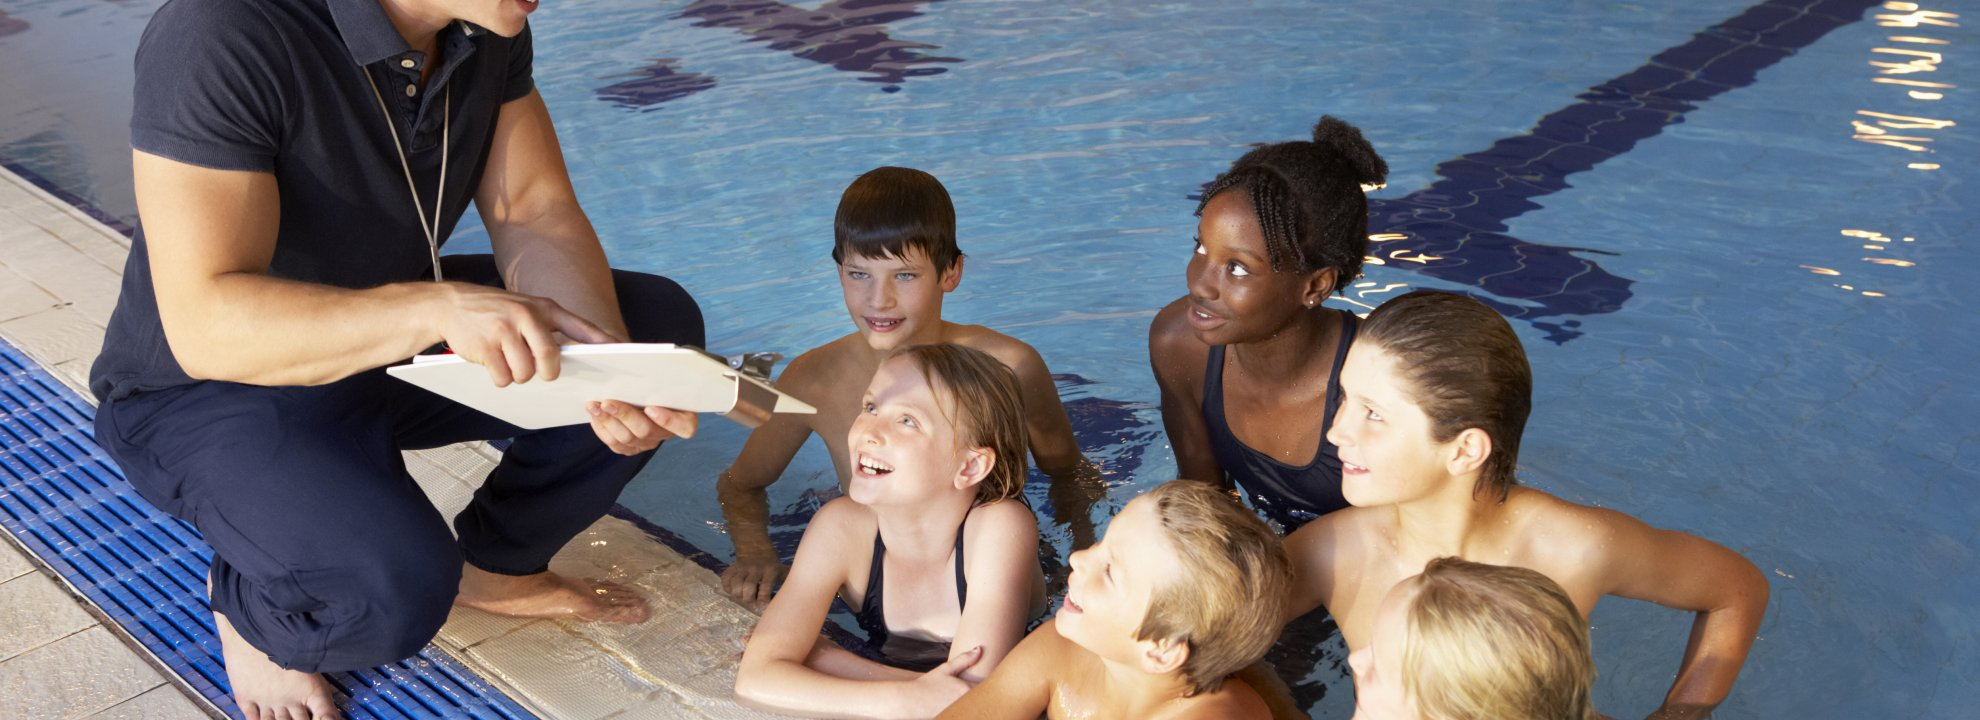 Swimming Teacher Recruitment Academy - Leicester, Leicestershire and Rutland Banner